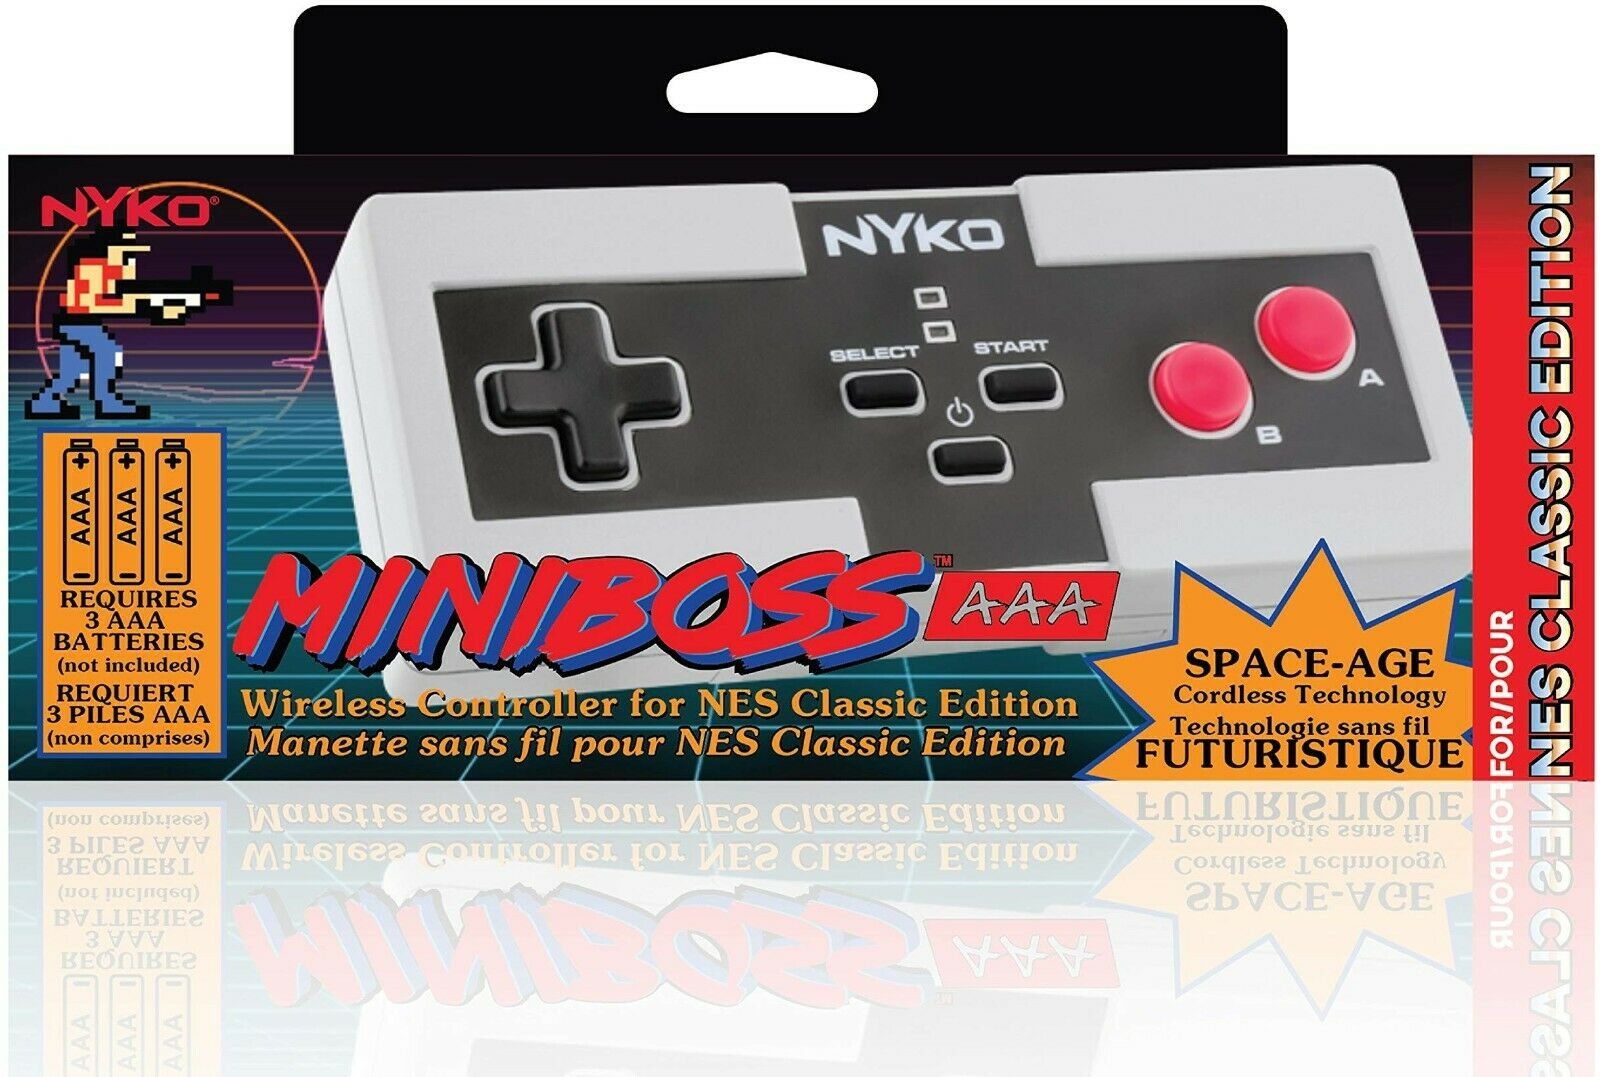 NYKO Miniboss  Wireless Controller for NEW CLASSIC EDITION NEW